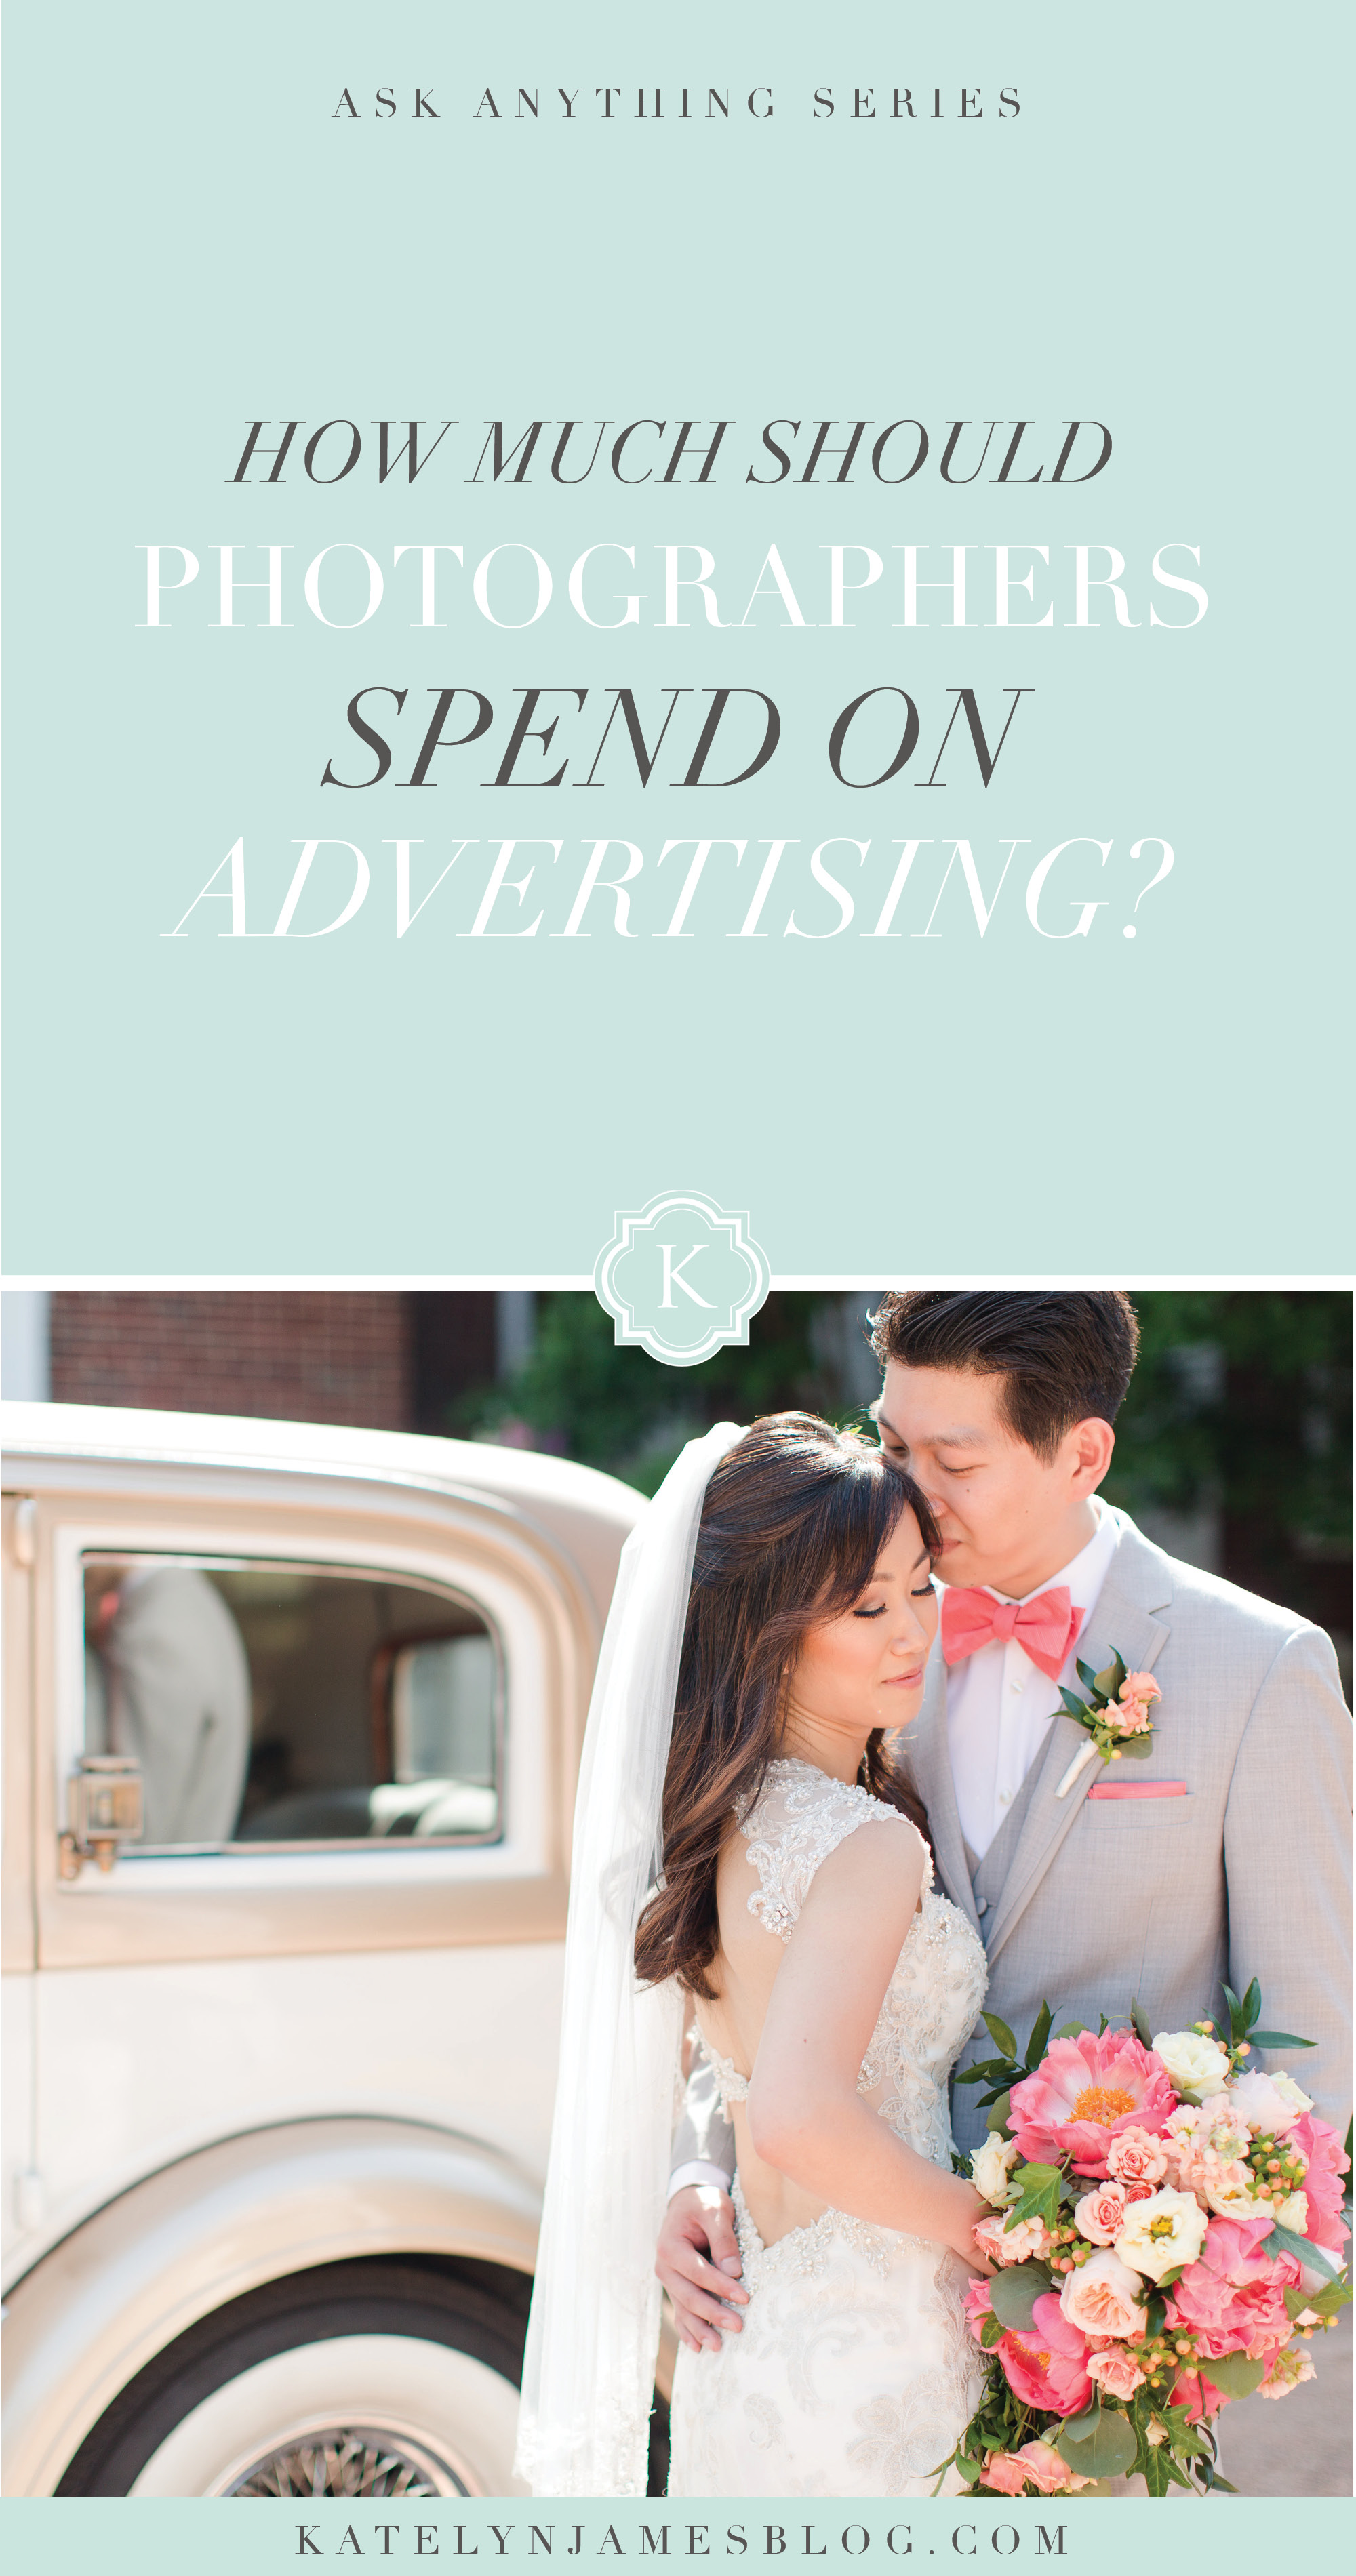 How Much Should Photographers Spend on Advertising? By Katelyn James Photography